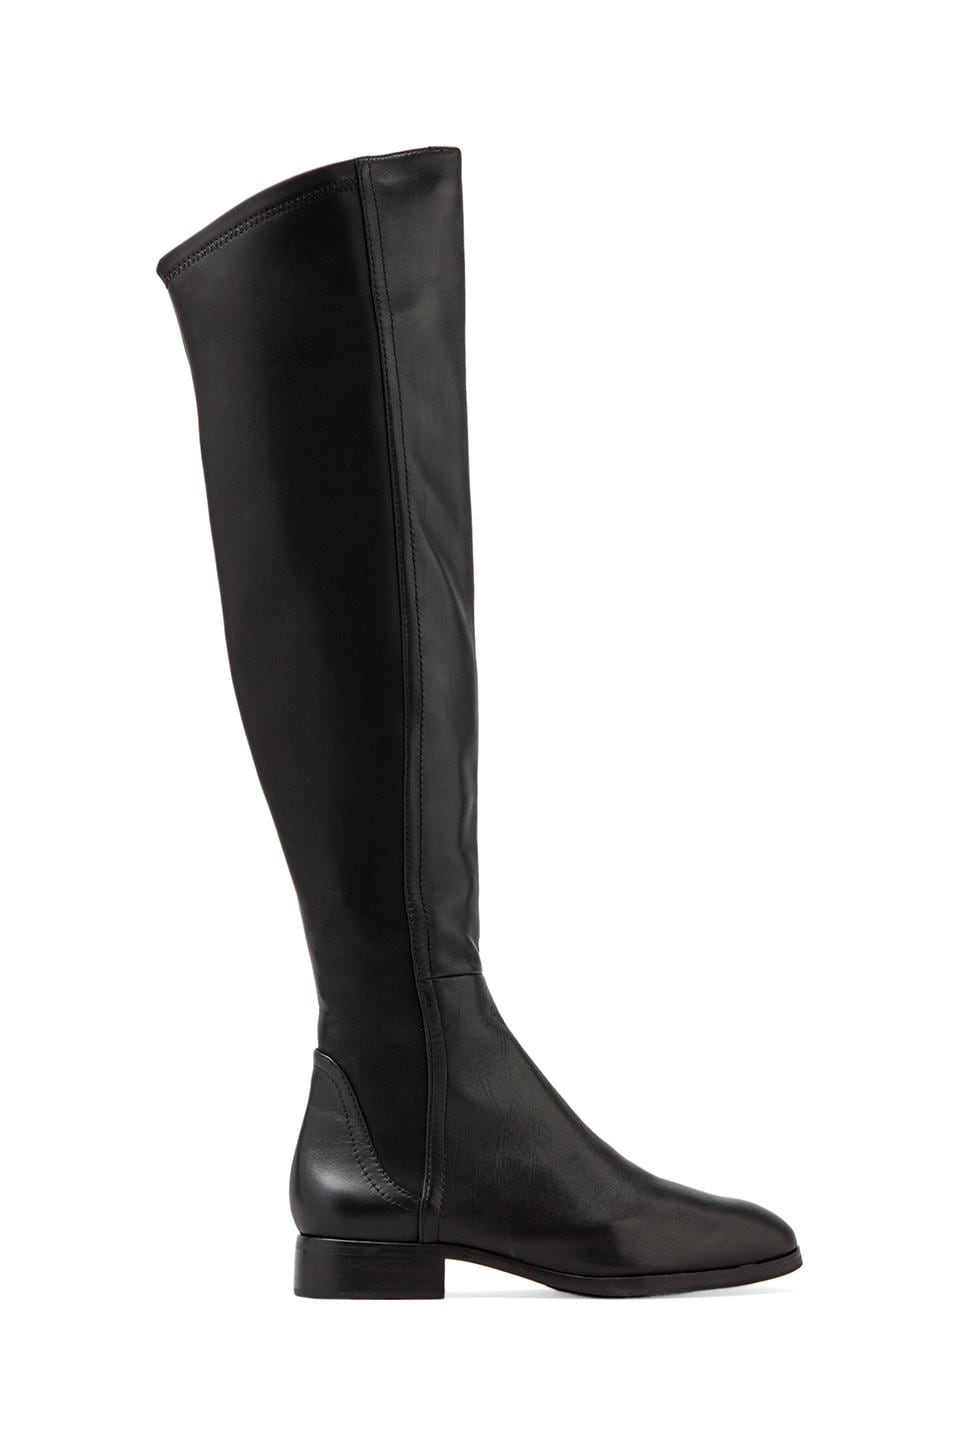 Steven Eden Over The Knee Boot in Black Multi